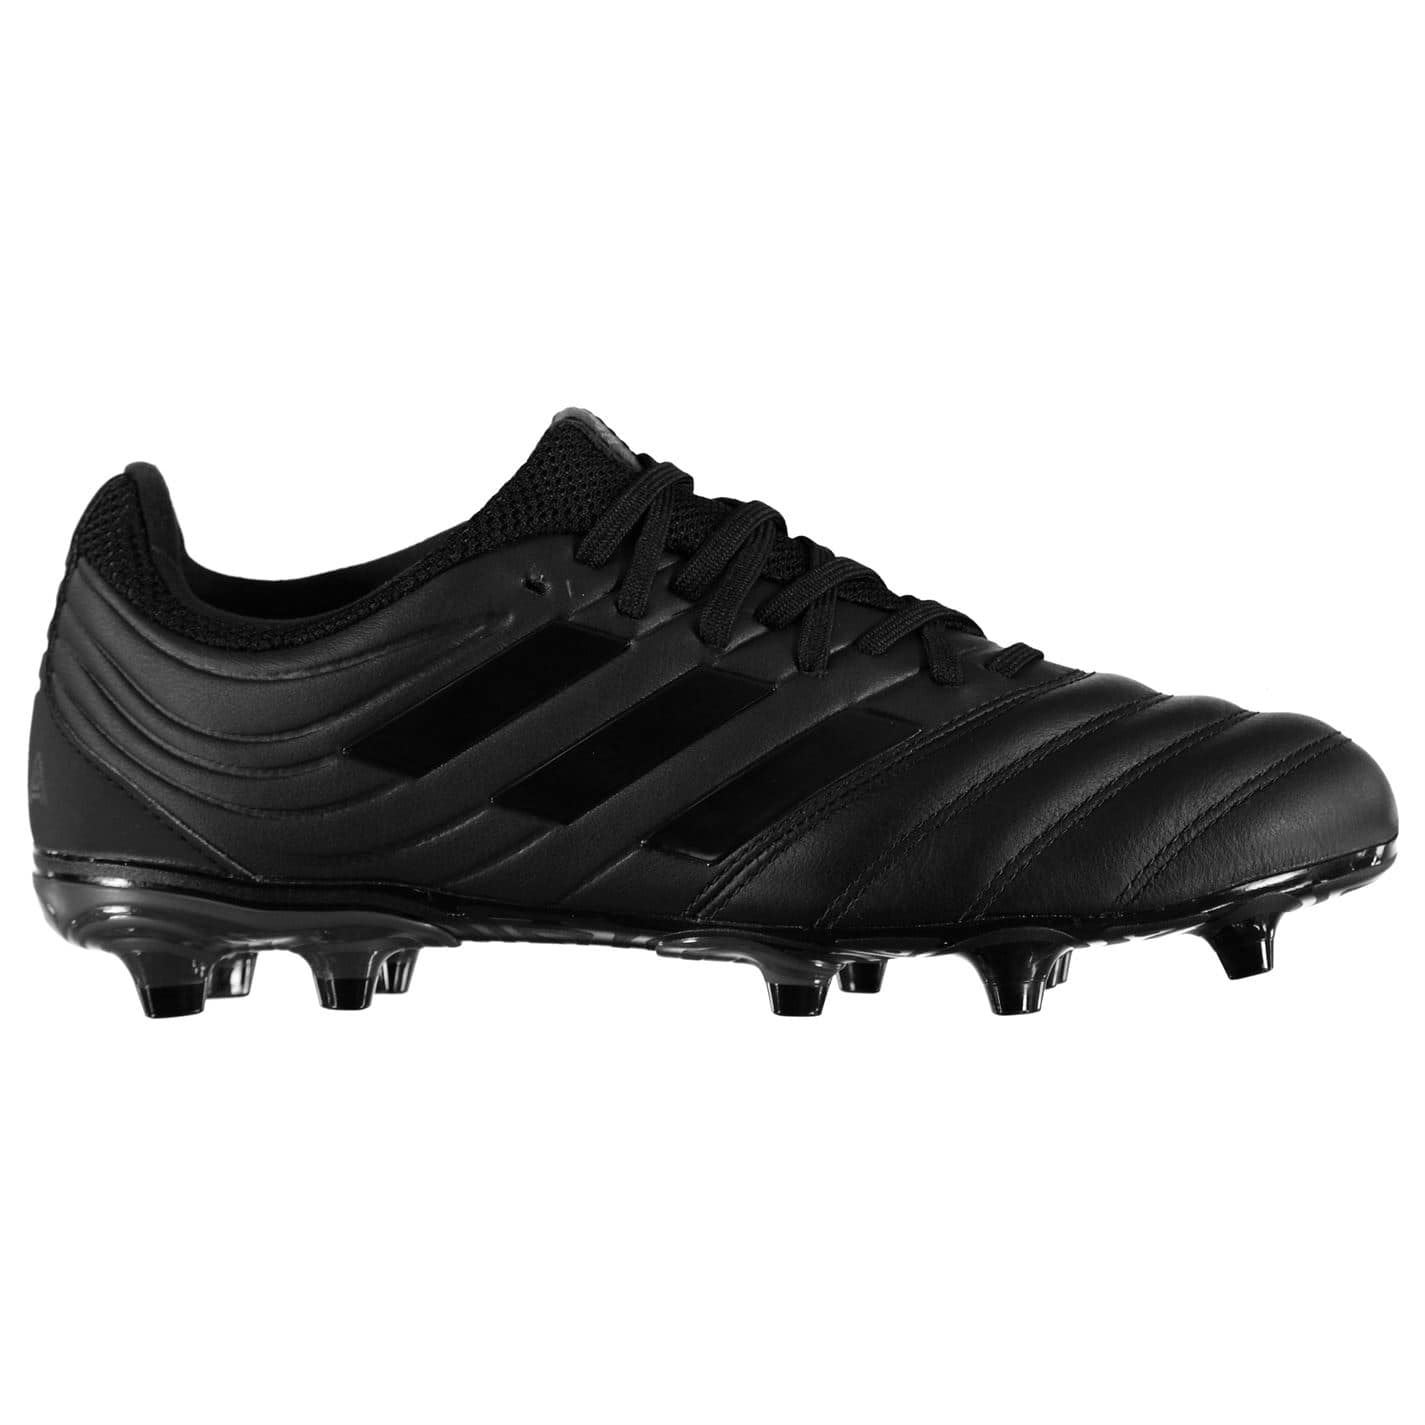 Details about adidas Copa 19.3 FG Football Boots Mens Black